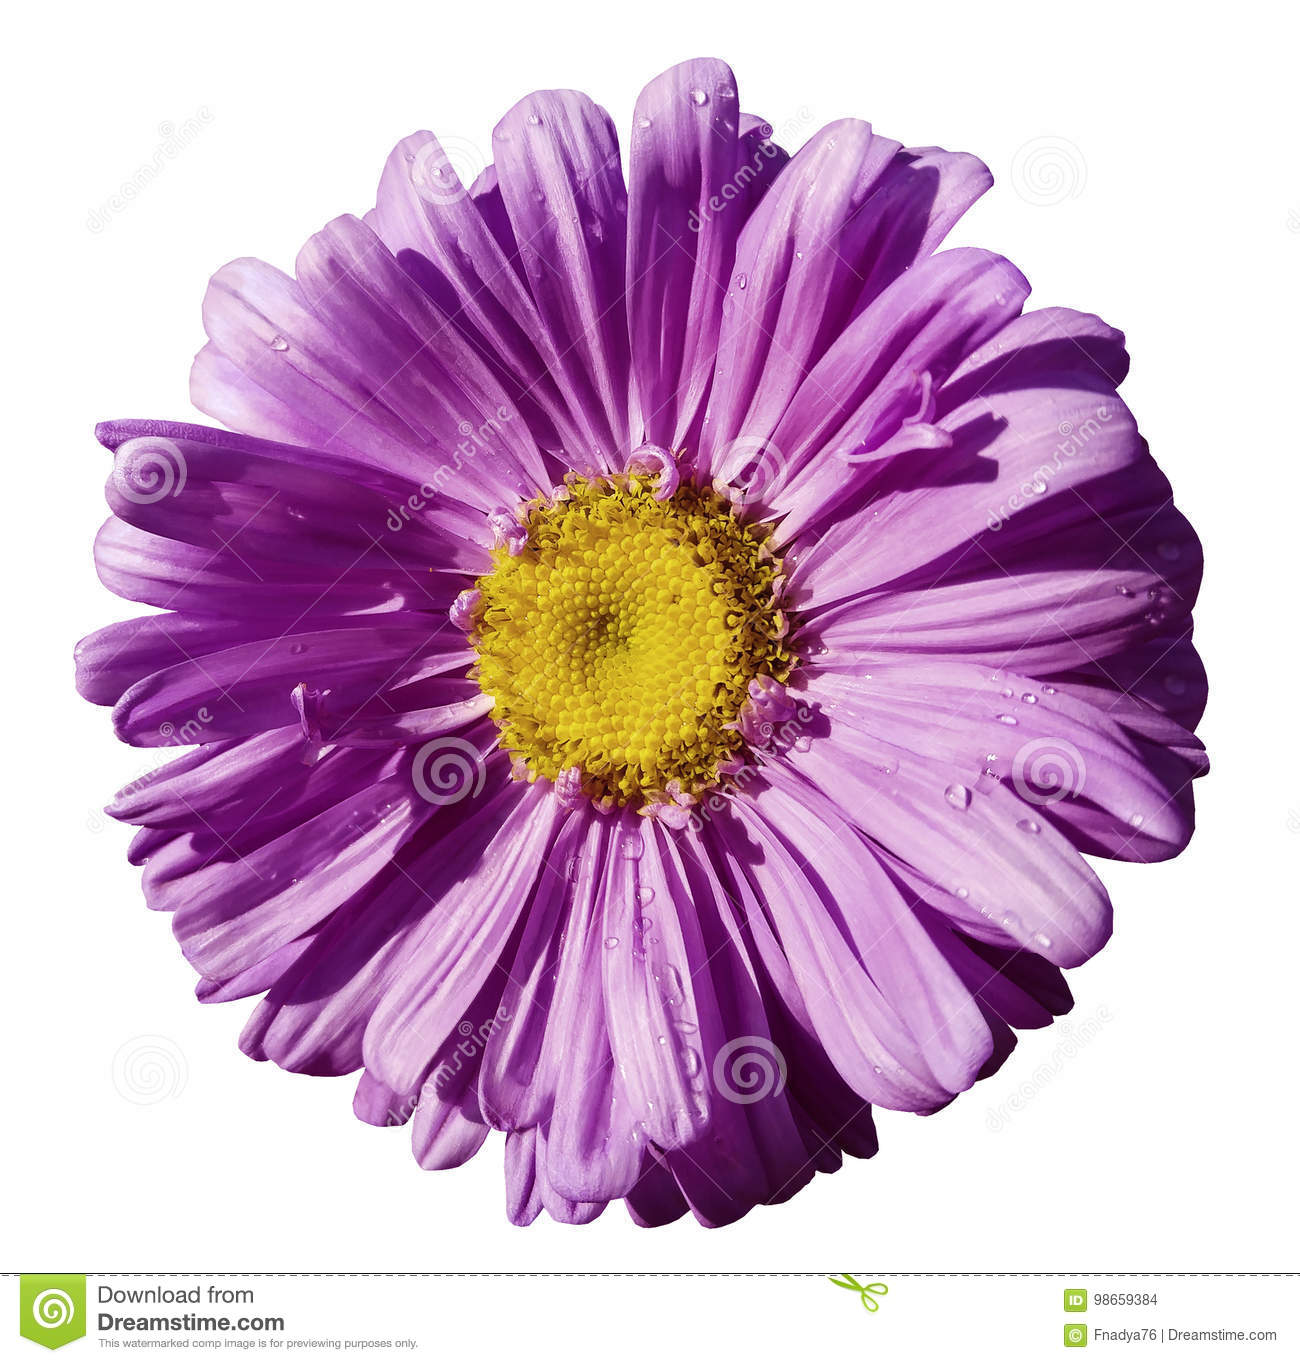 Flower purple Chamomile on white isolated background with clipping path. Daisy violet-yellow with droplets of water for design. C